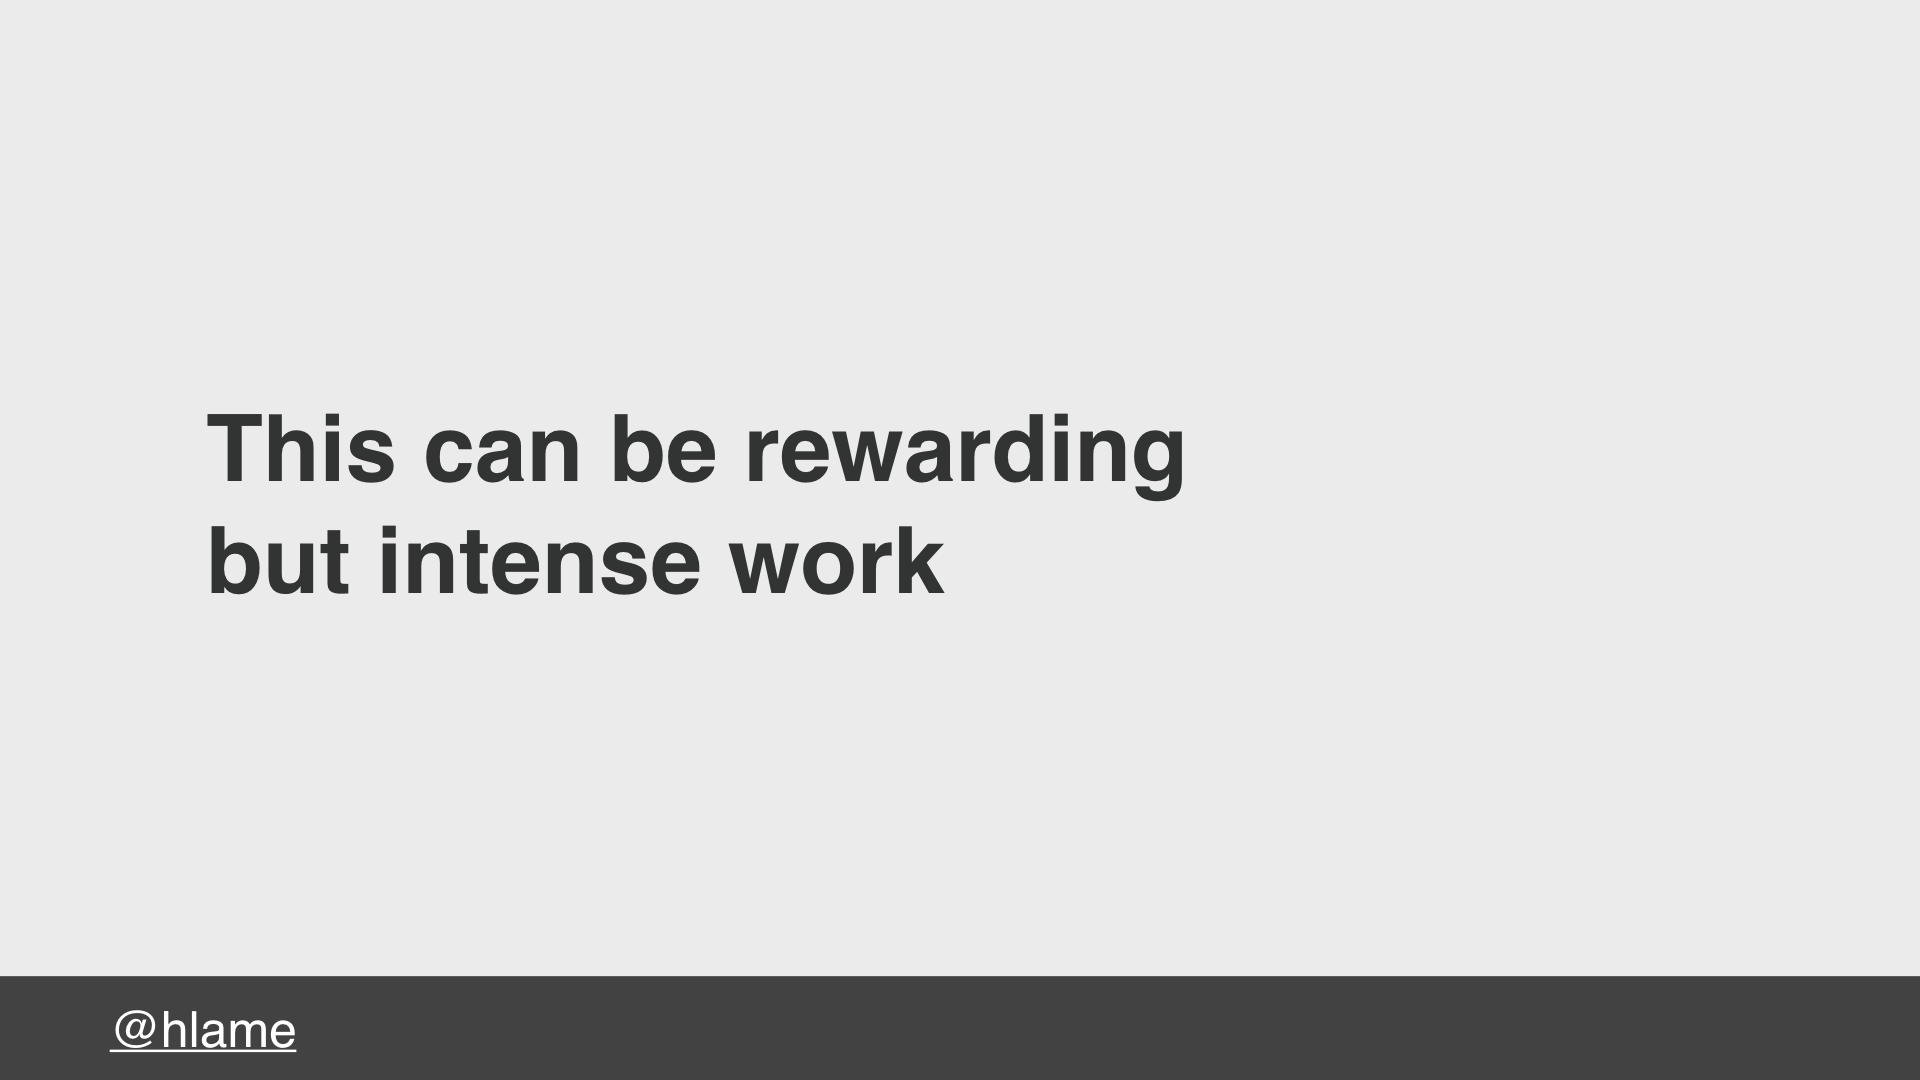 text: This can be rewarding but intense work